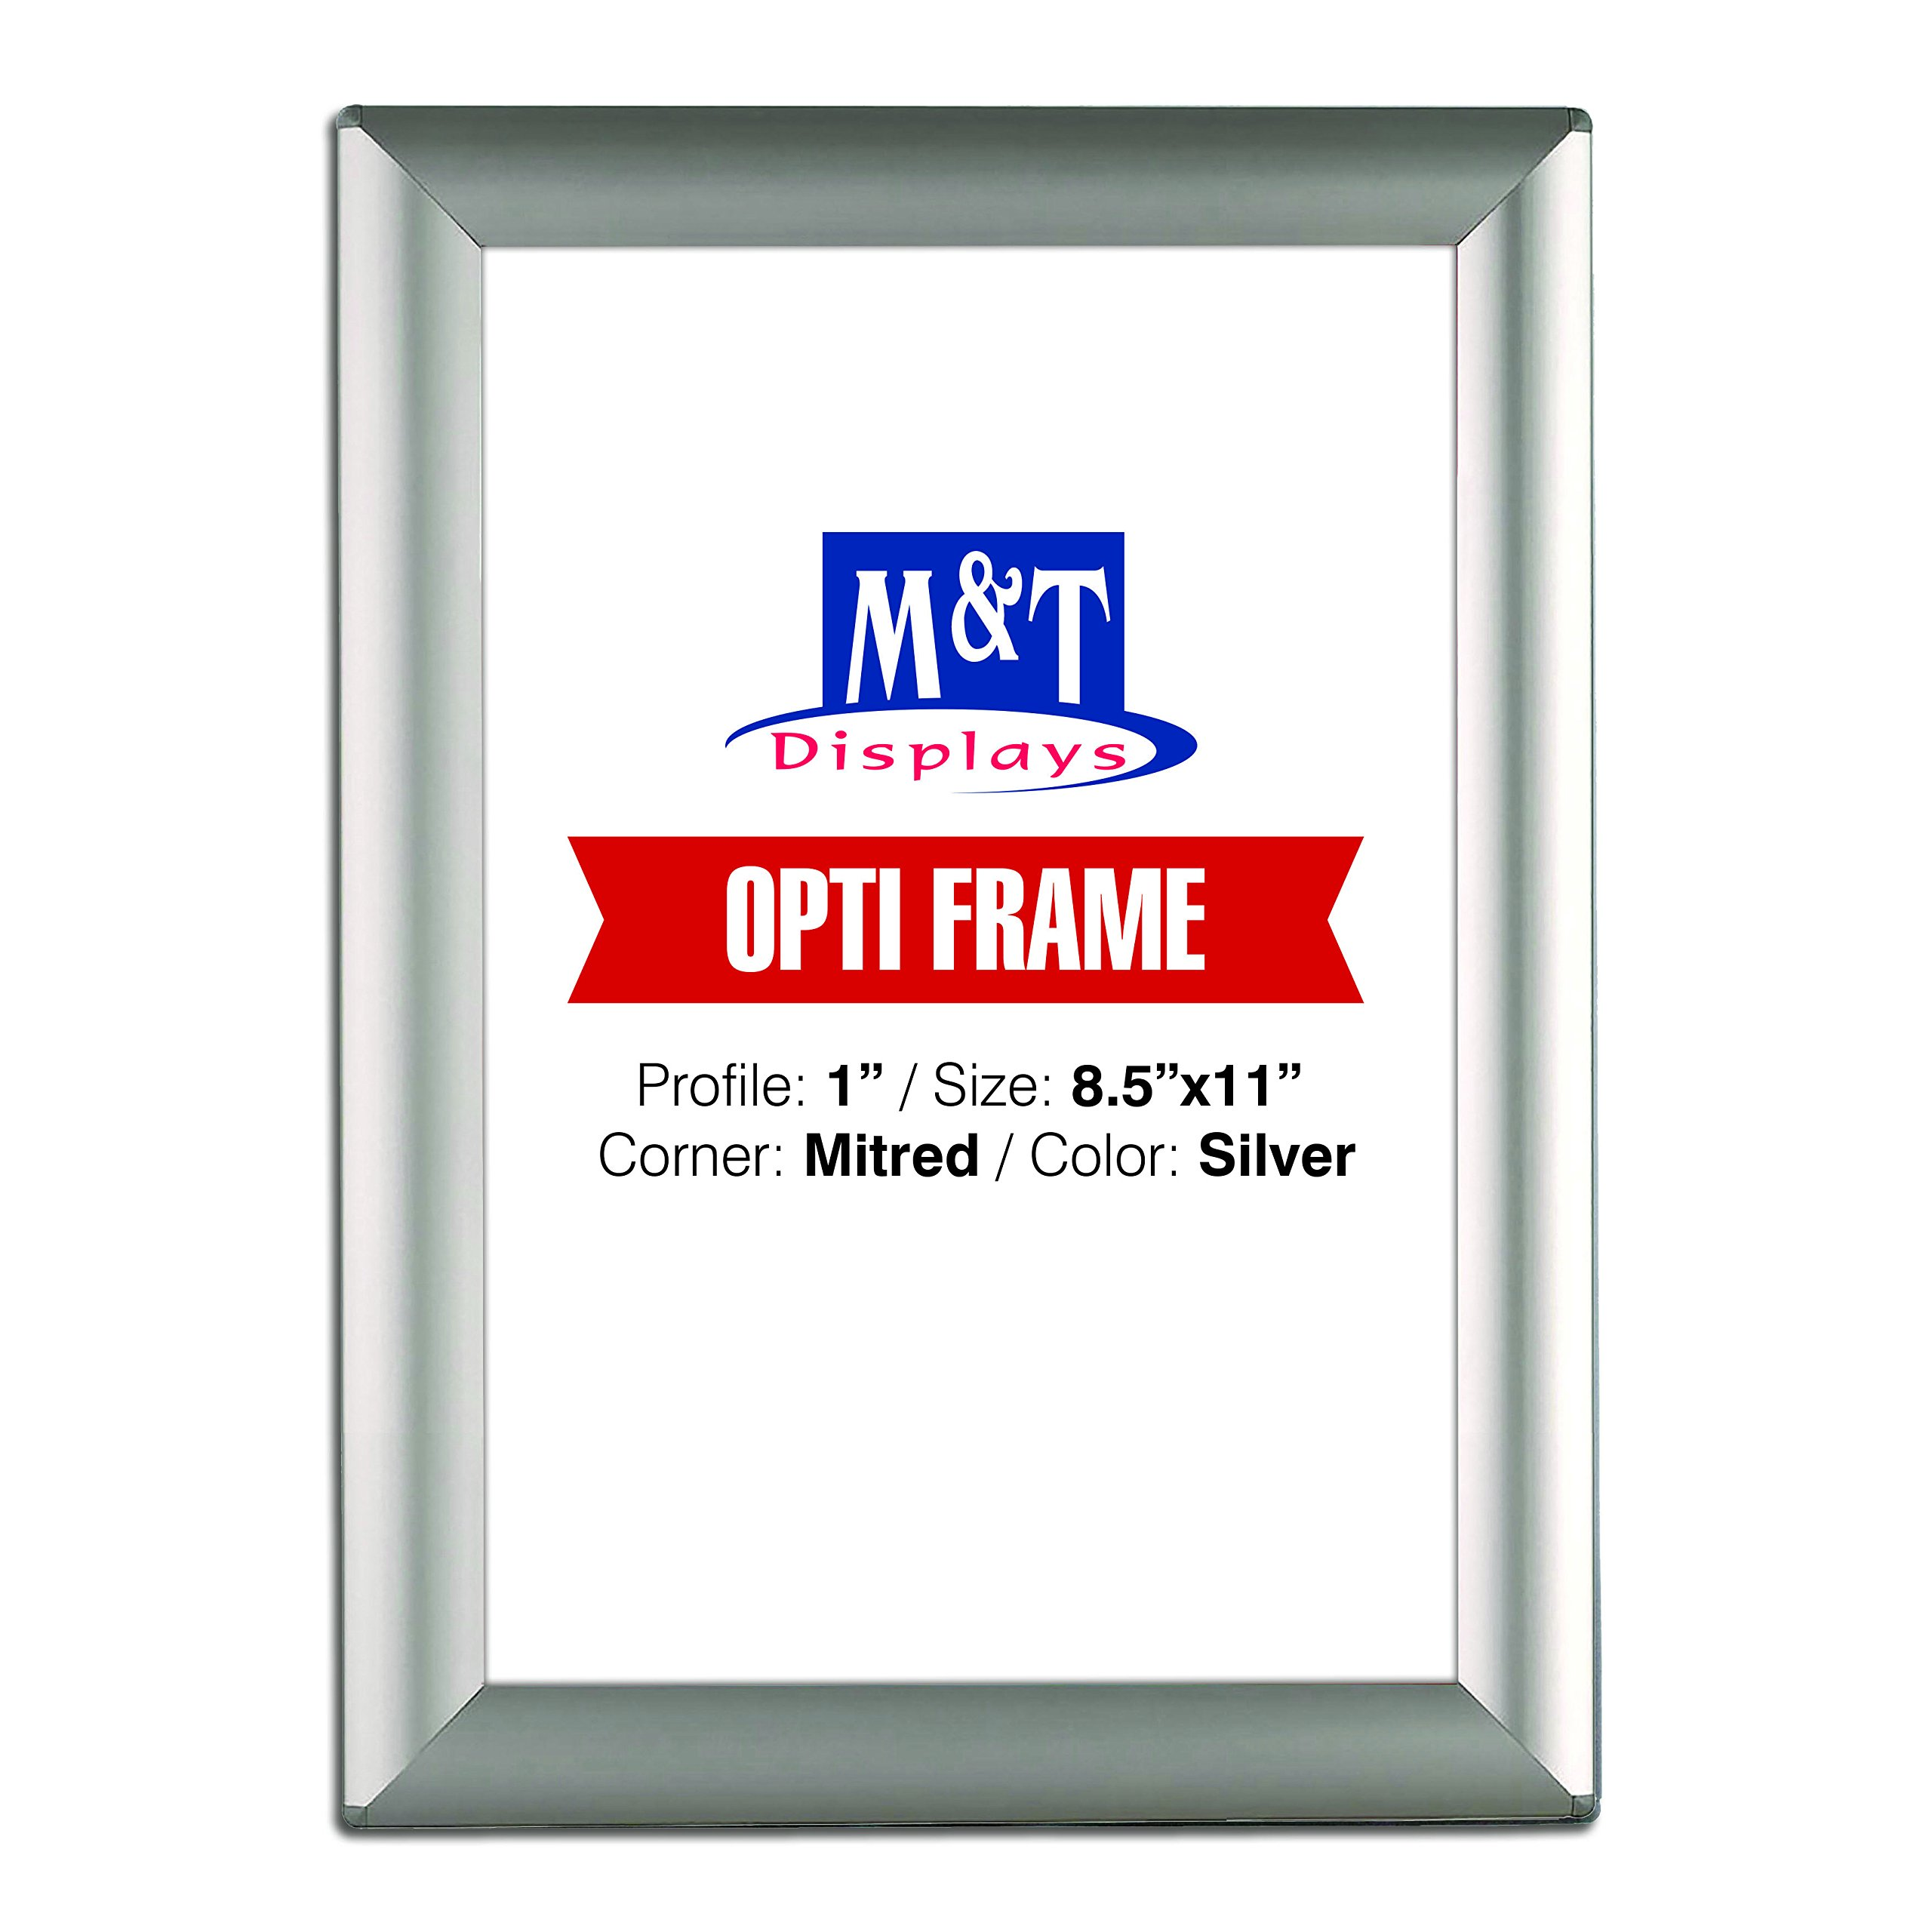 M&T Displays 8.5x11 Picture Photo Frame for Table and Wall, Snap Frame, 1 inch, Front Loading with Back Support - Silver by M&T Displays